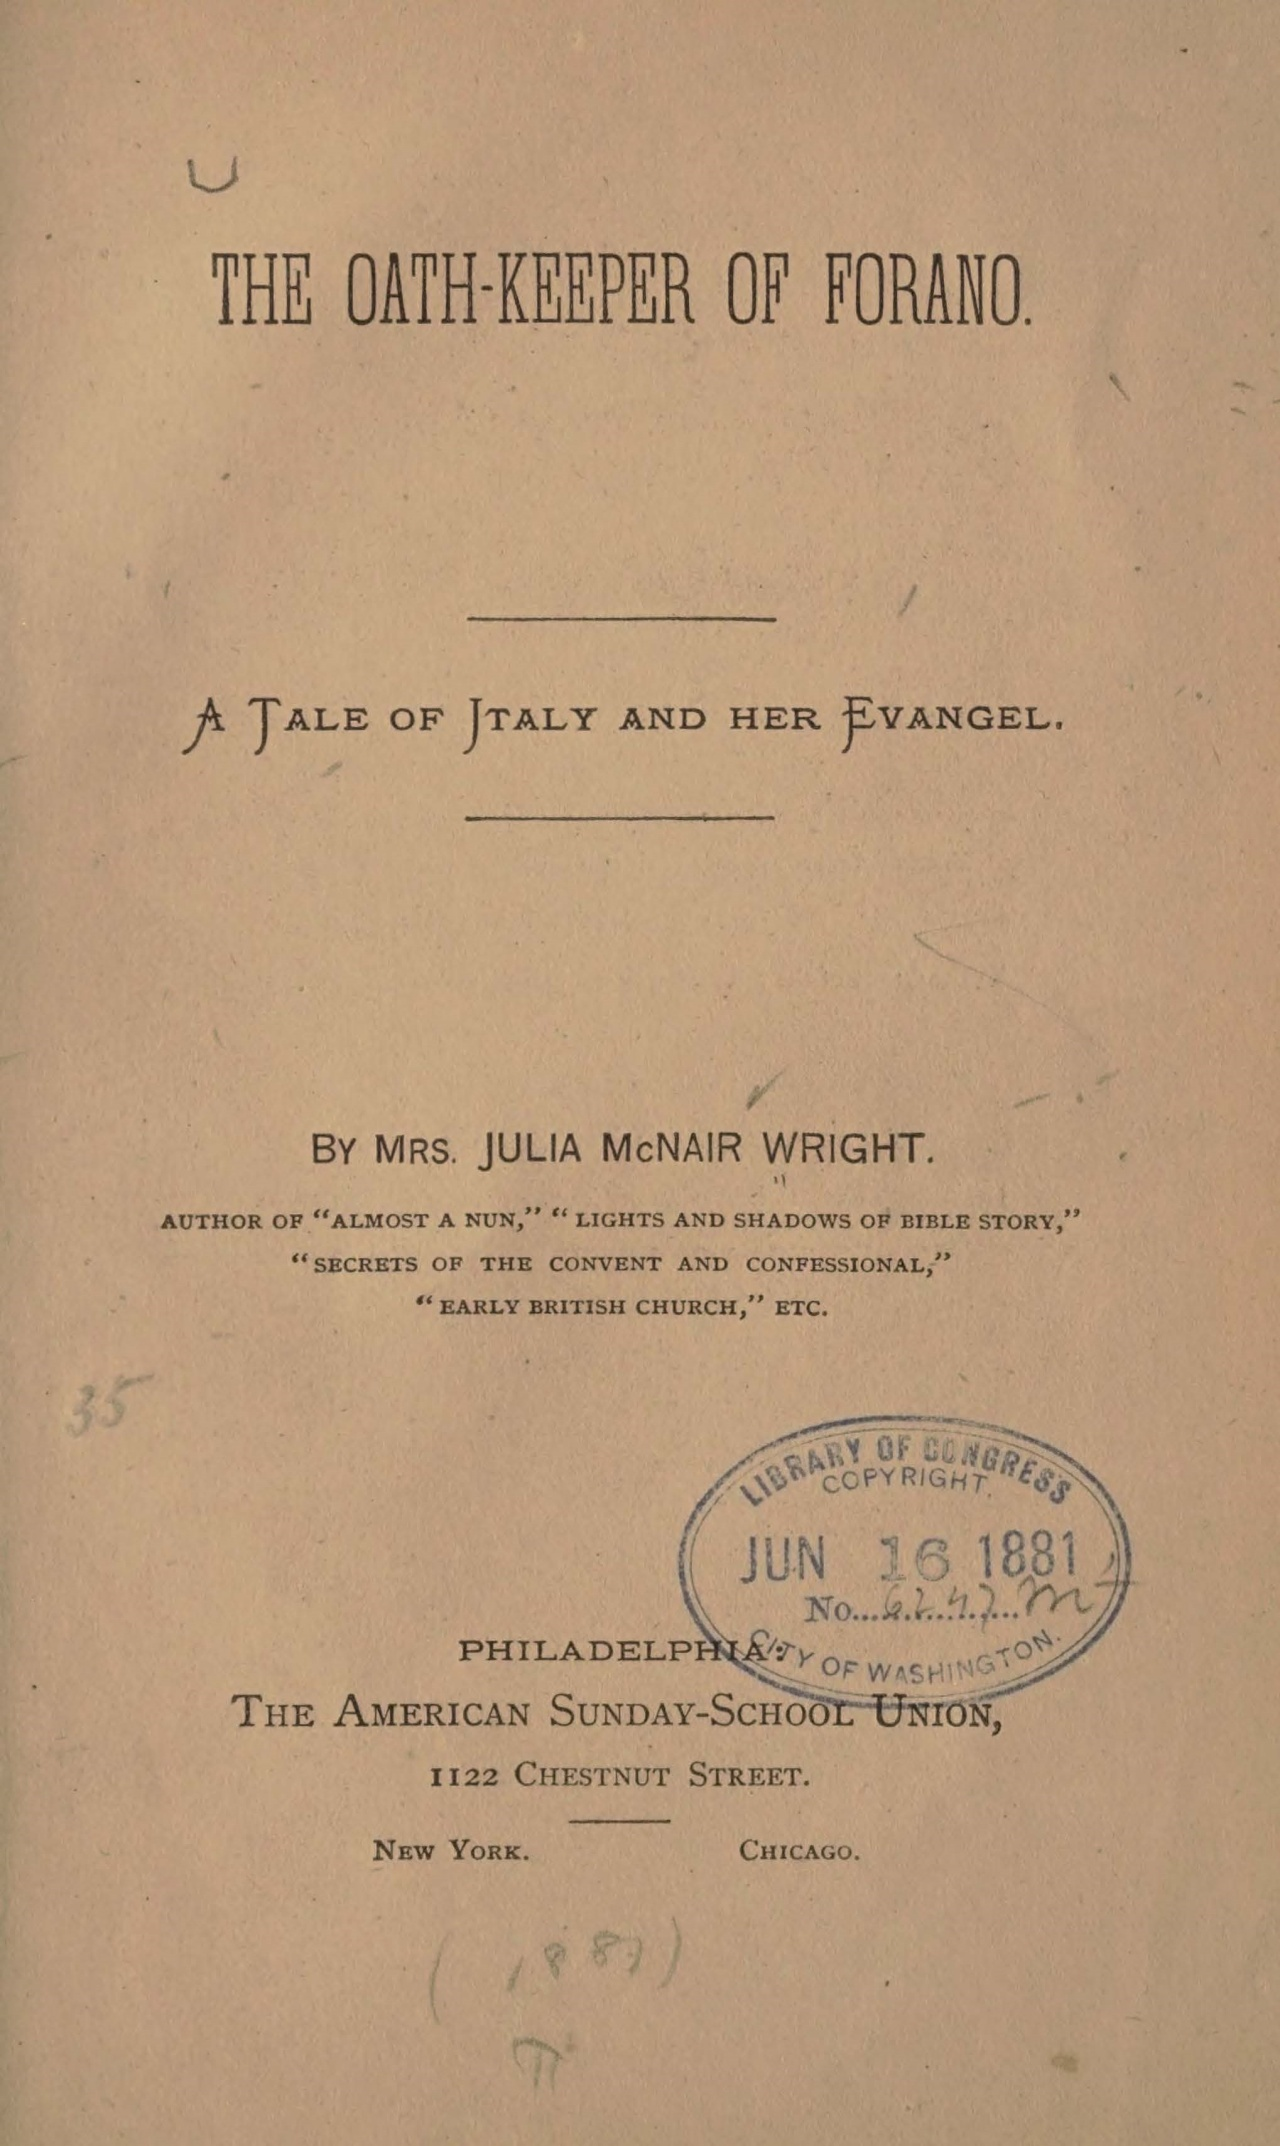 Wright, Julia McNair, The Oath-Keeper of Forano Title Page.jpg